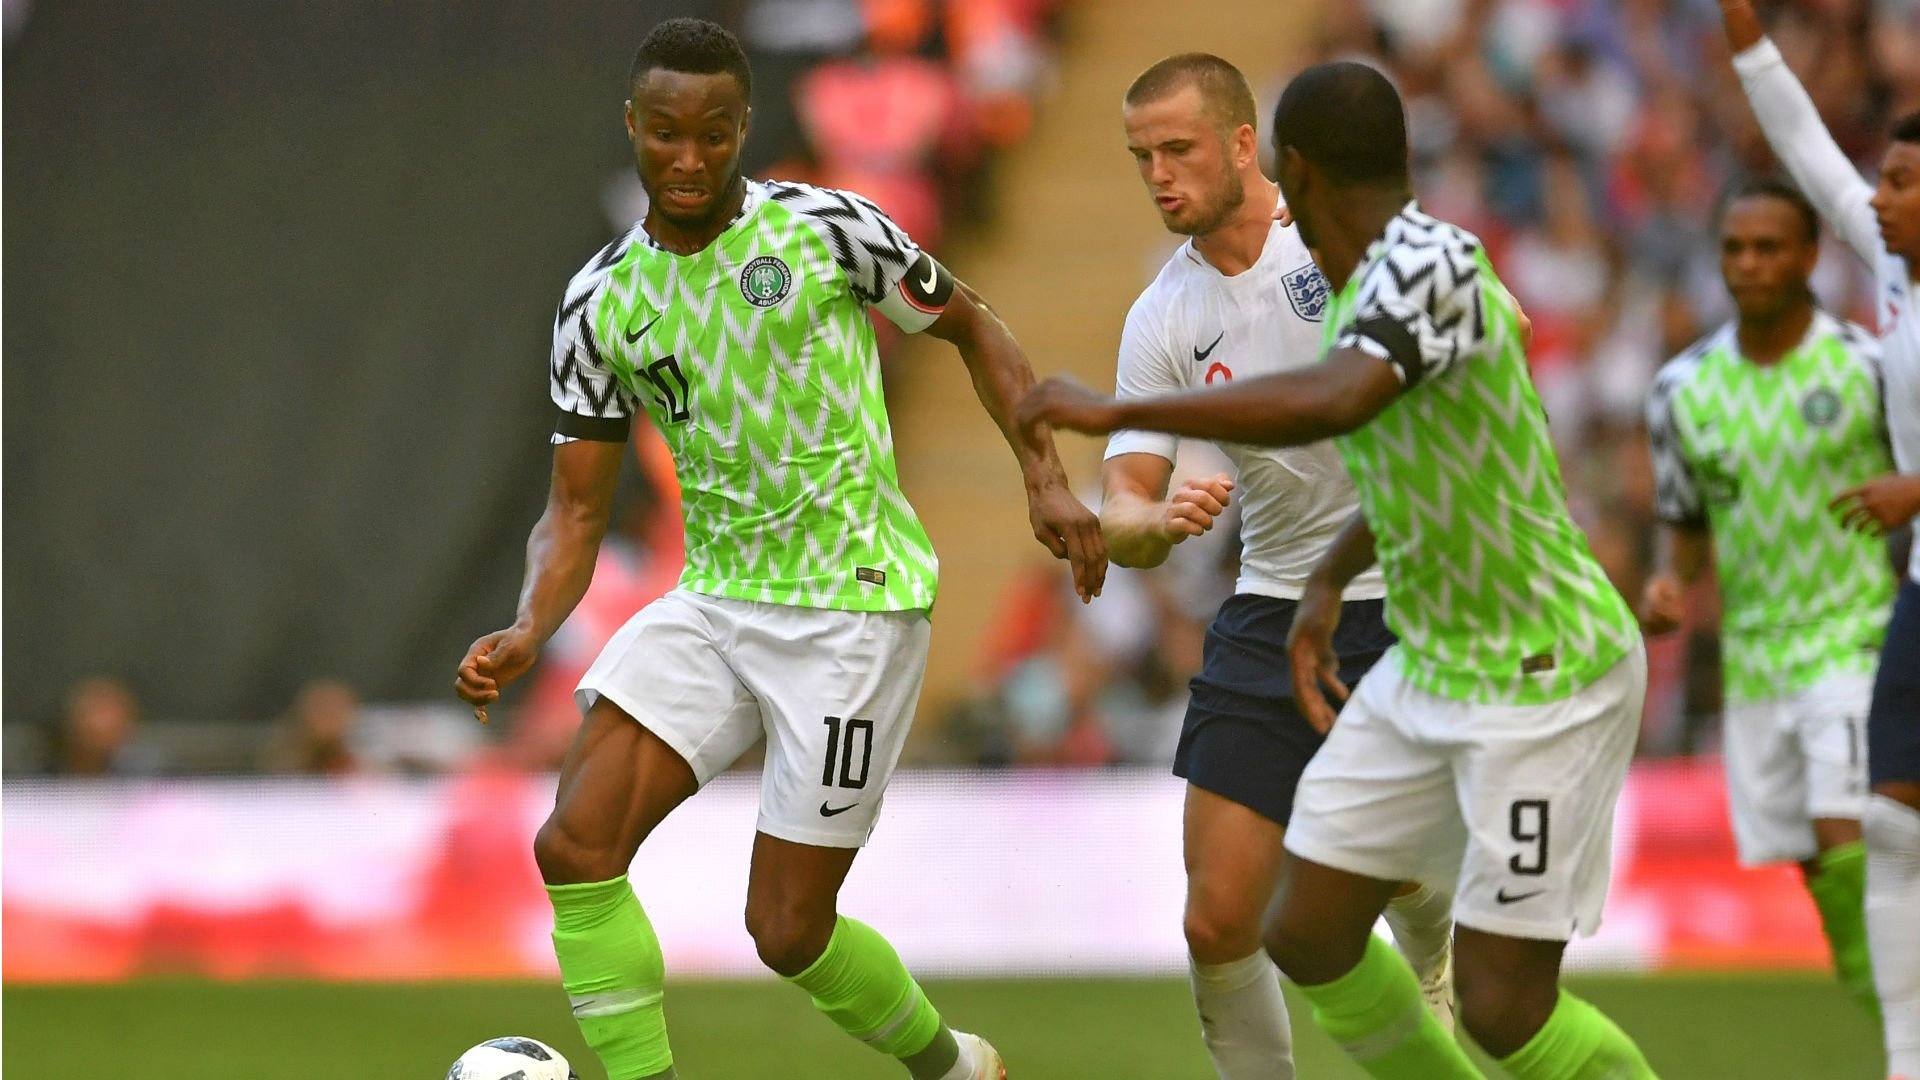 Rohr: Super Eagles Physically Ready For Croatia; Russians Should Support Their In-Law Mikel, Son Idowu